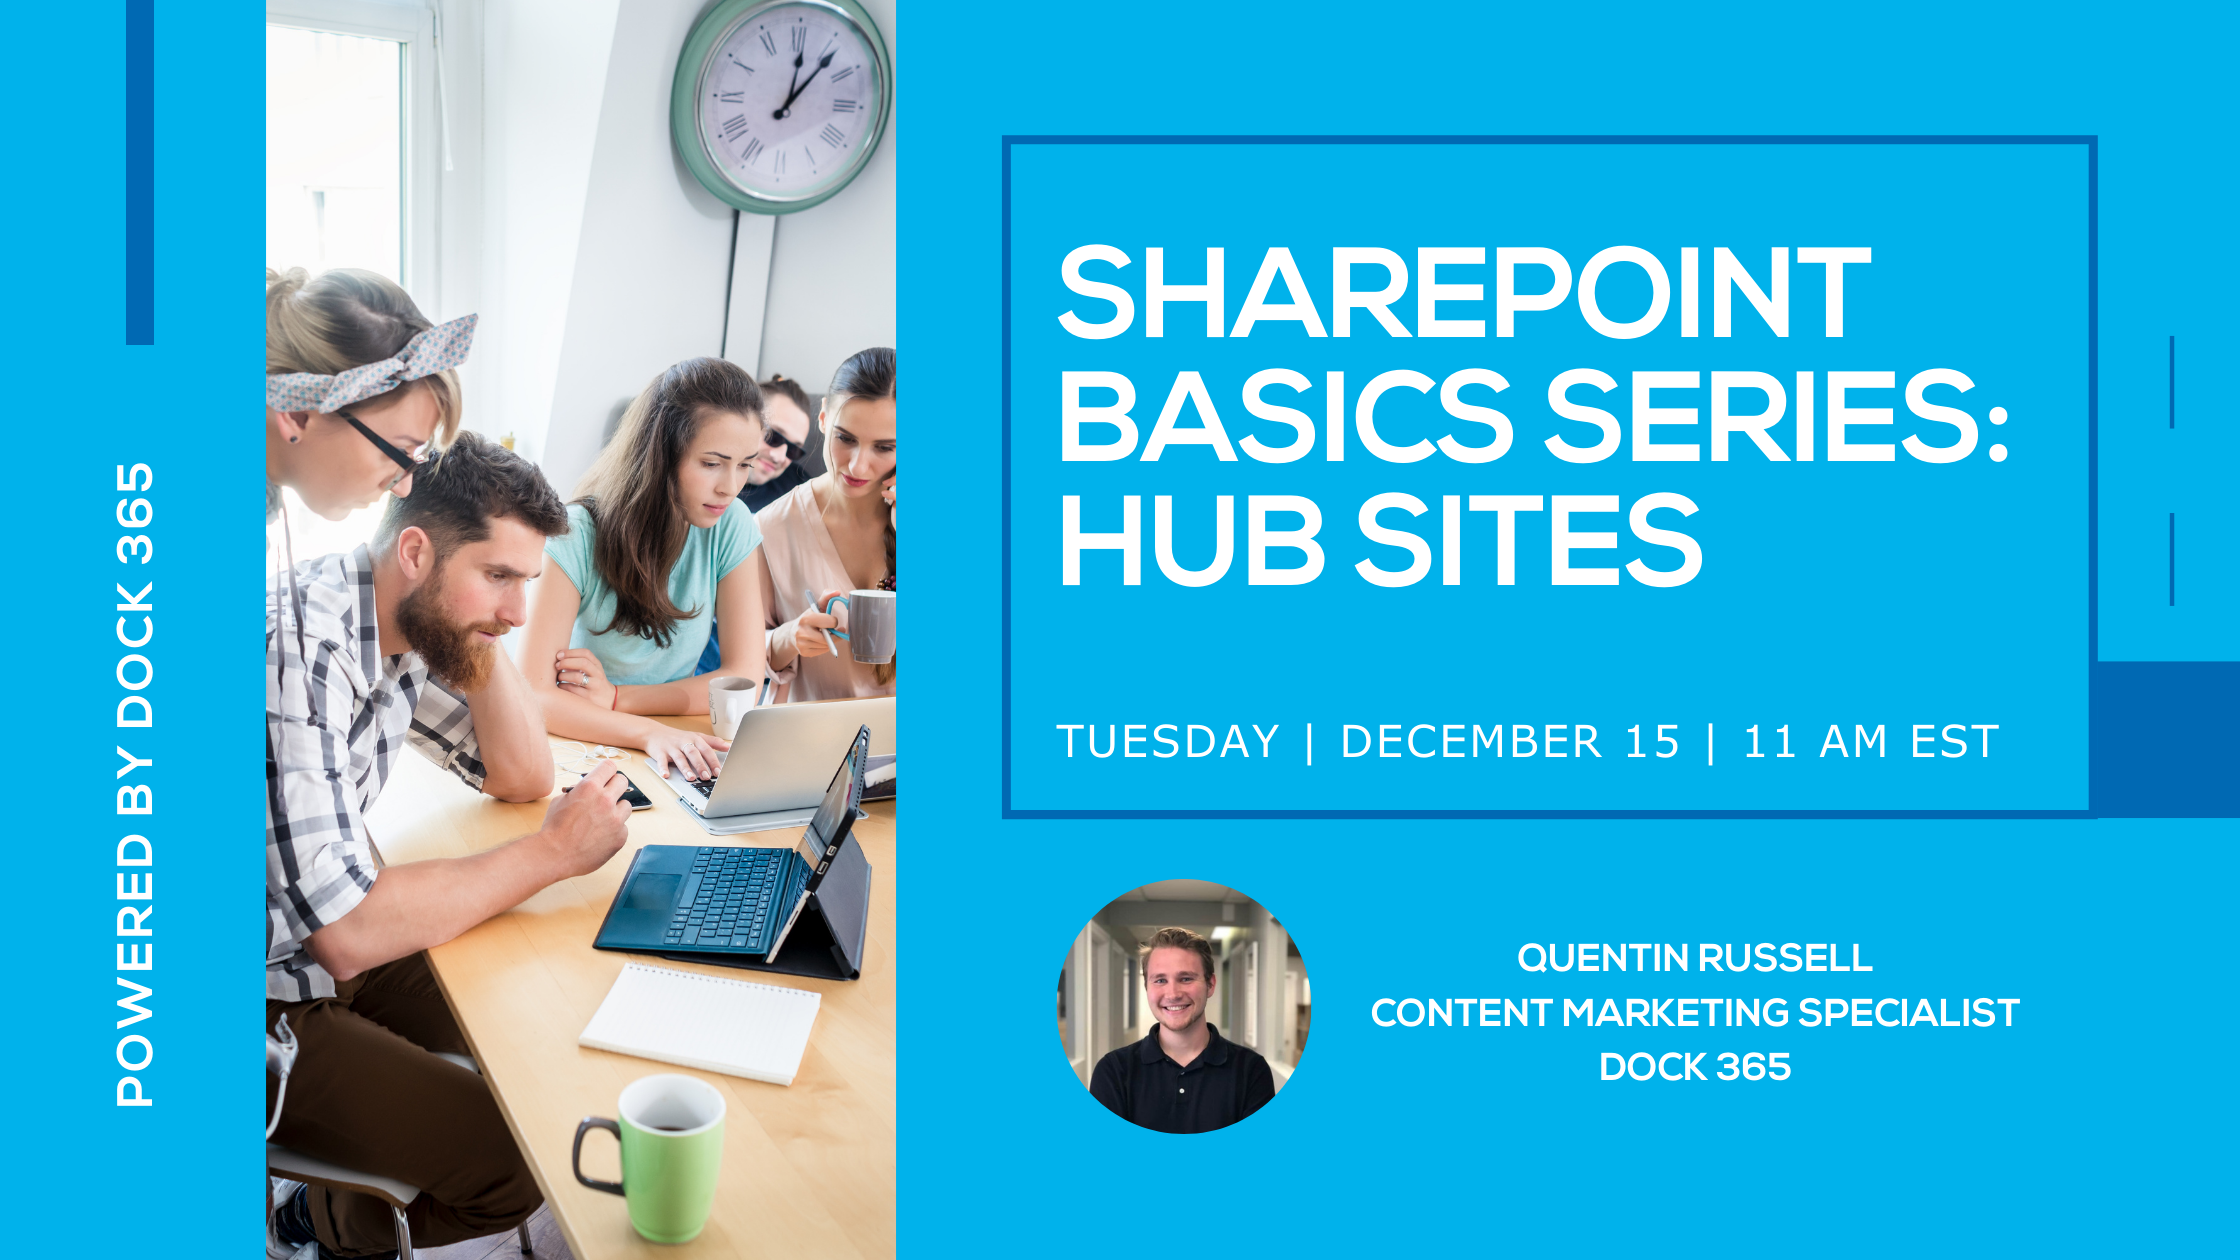 Dock 365 WEBINAR - SharePoint Basics Series: Hub Sites